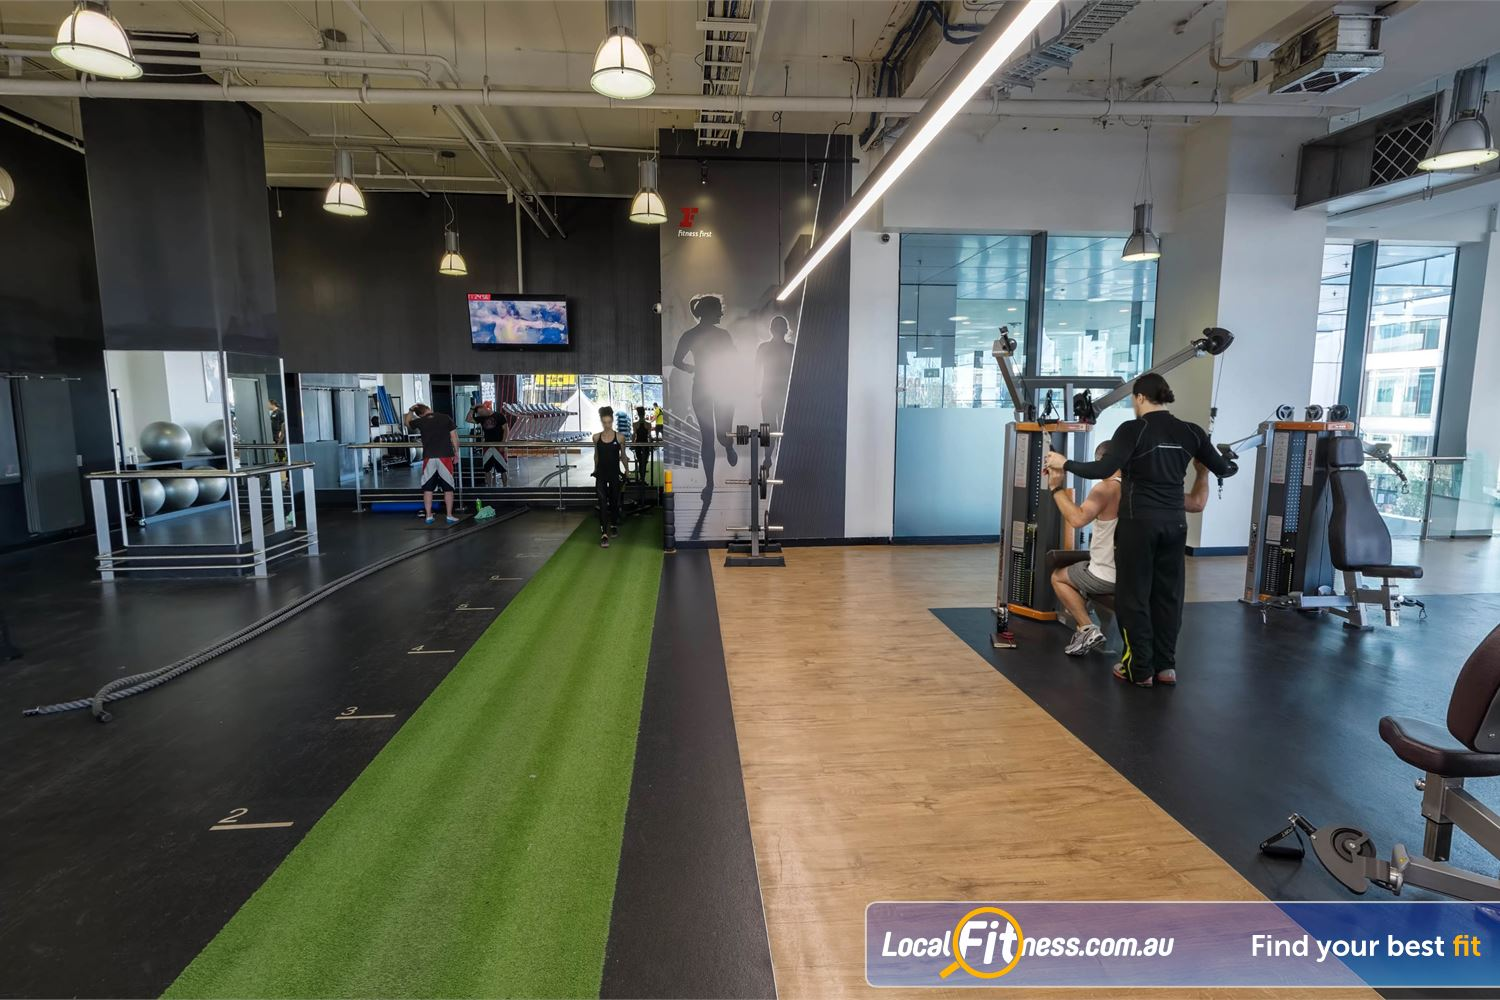 Fitness First Platinum Market St. Sydney Multiple freestyle training area at Fitness First Sydney gym.